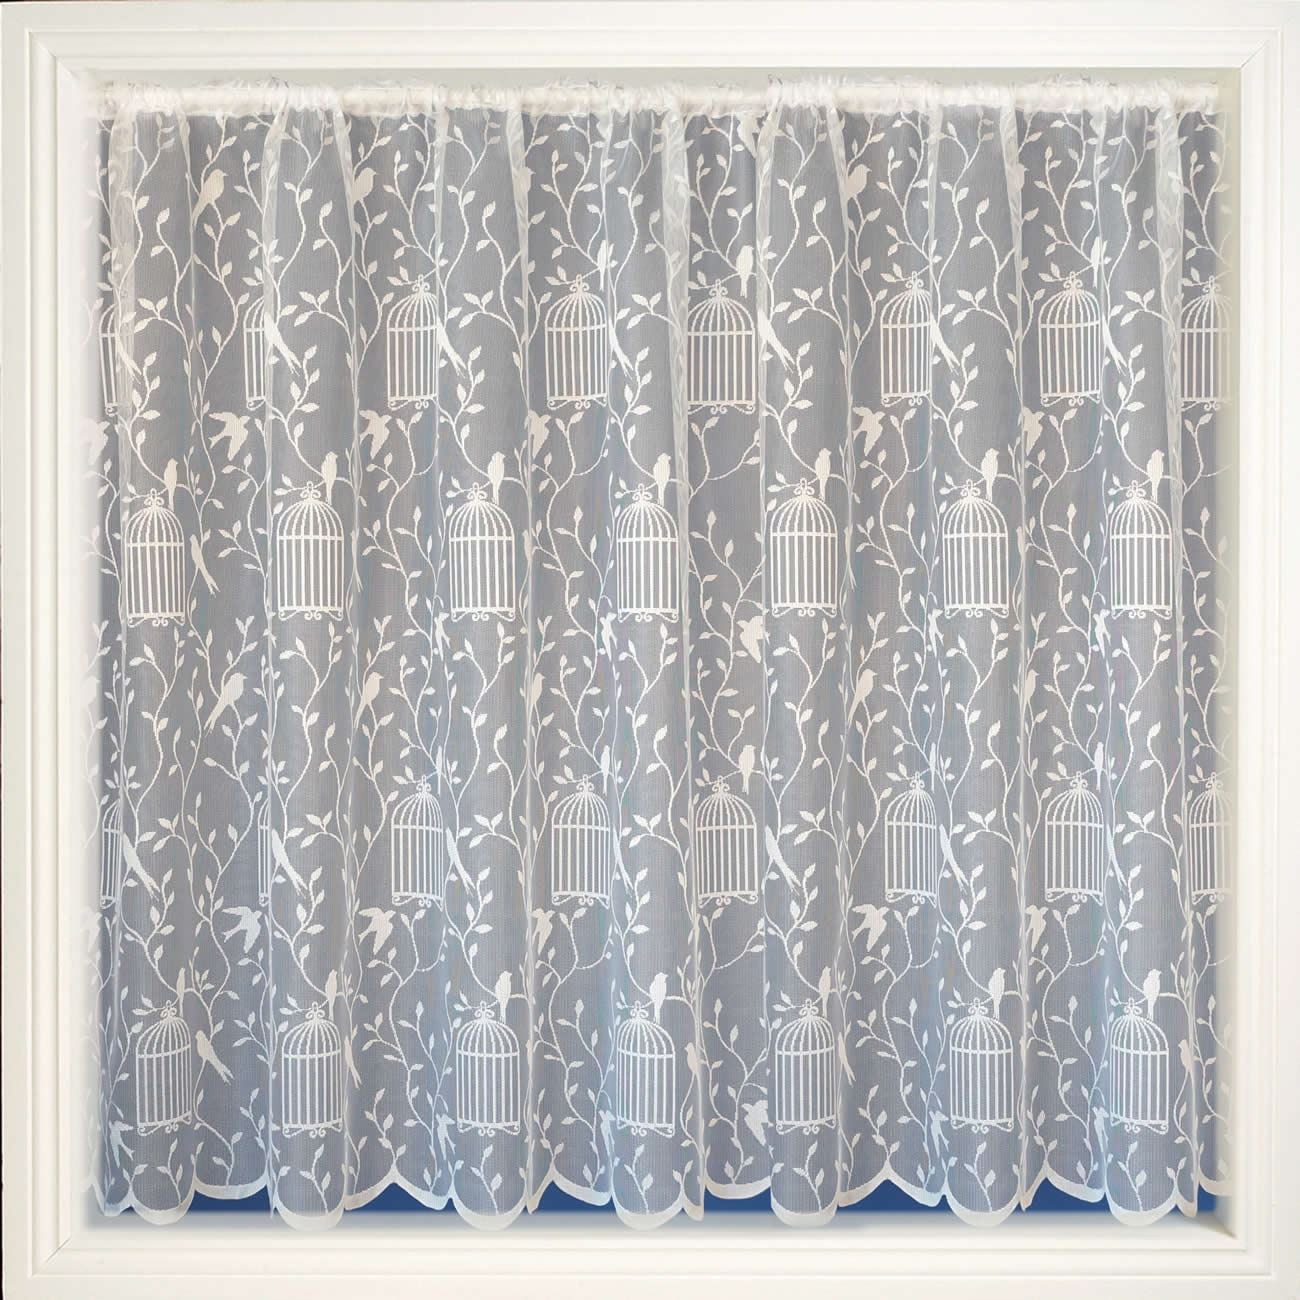 MODERN WHITE SHEERS NET CURTAIN LUXURY LACE CURTAINS NETS ...